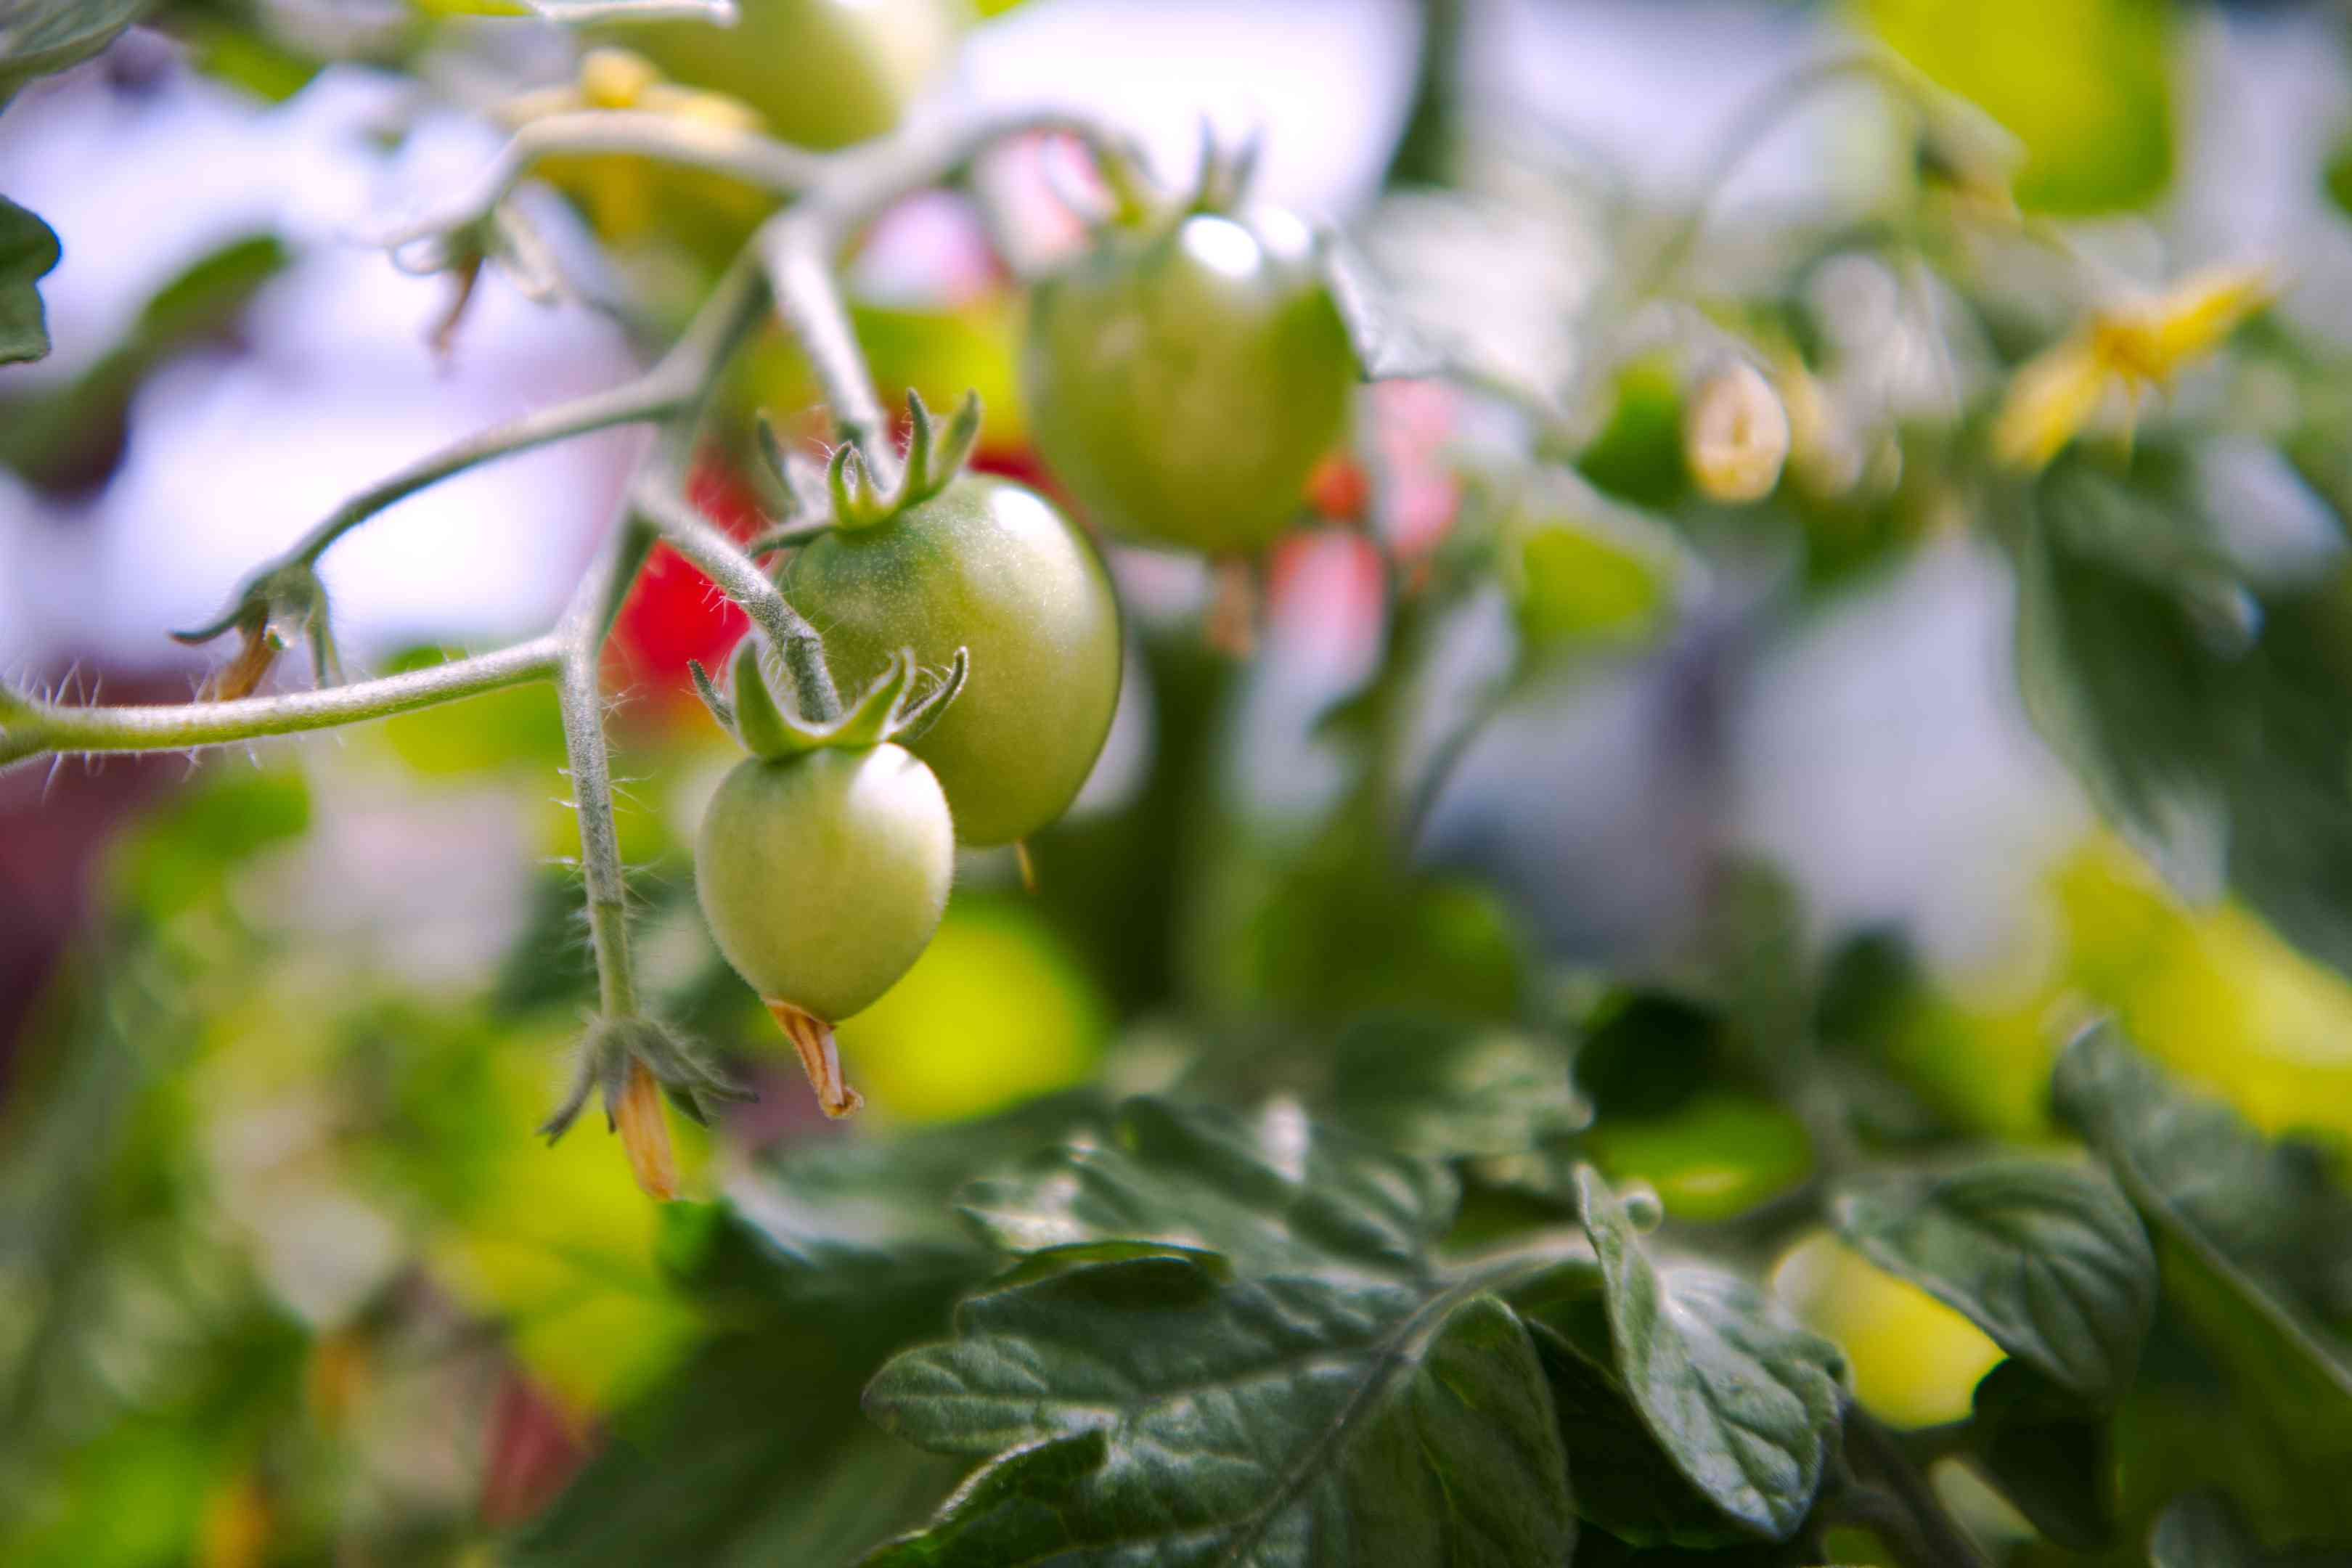 close view of green tomatoes ripening on vine in small garden